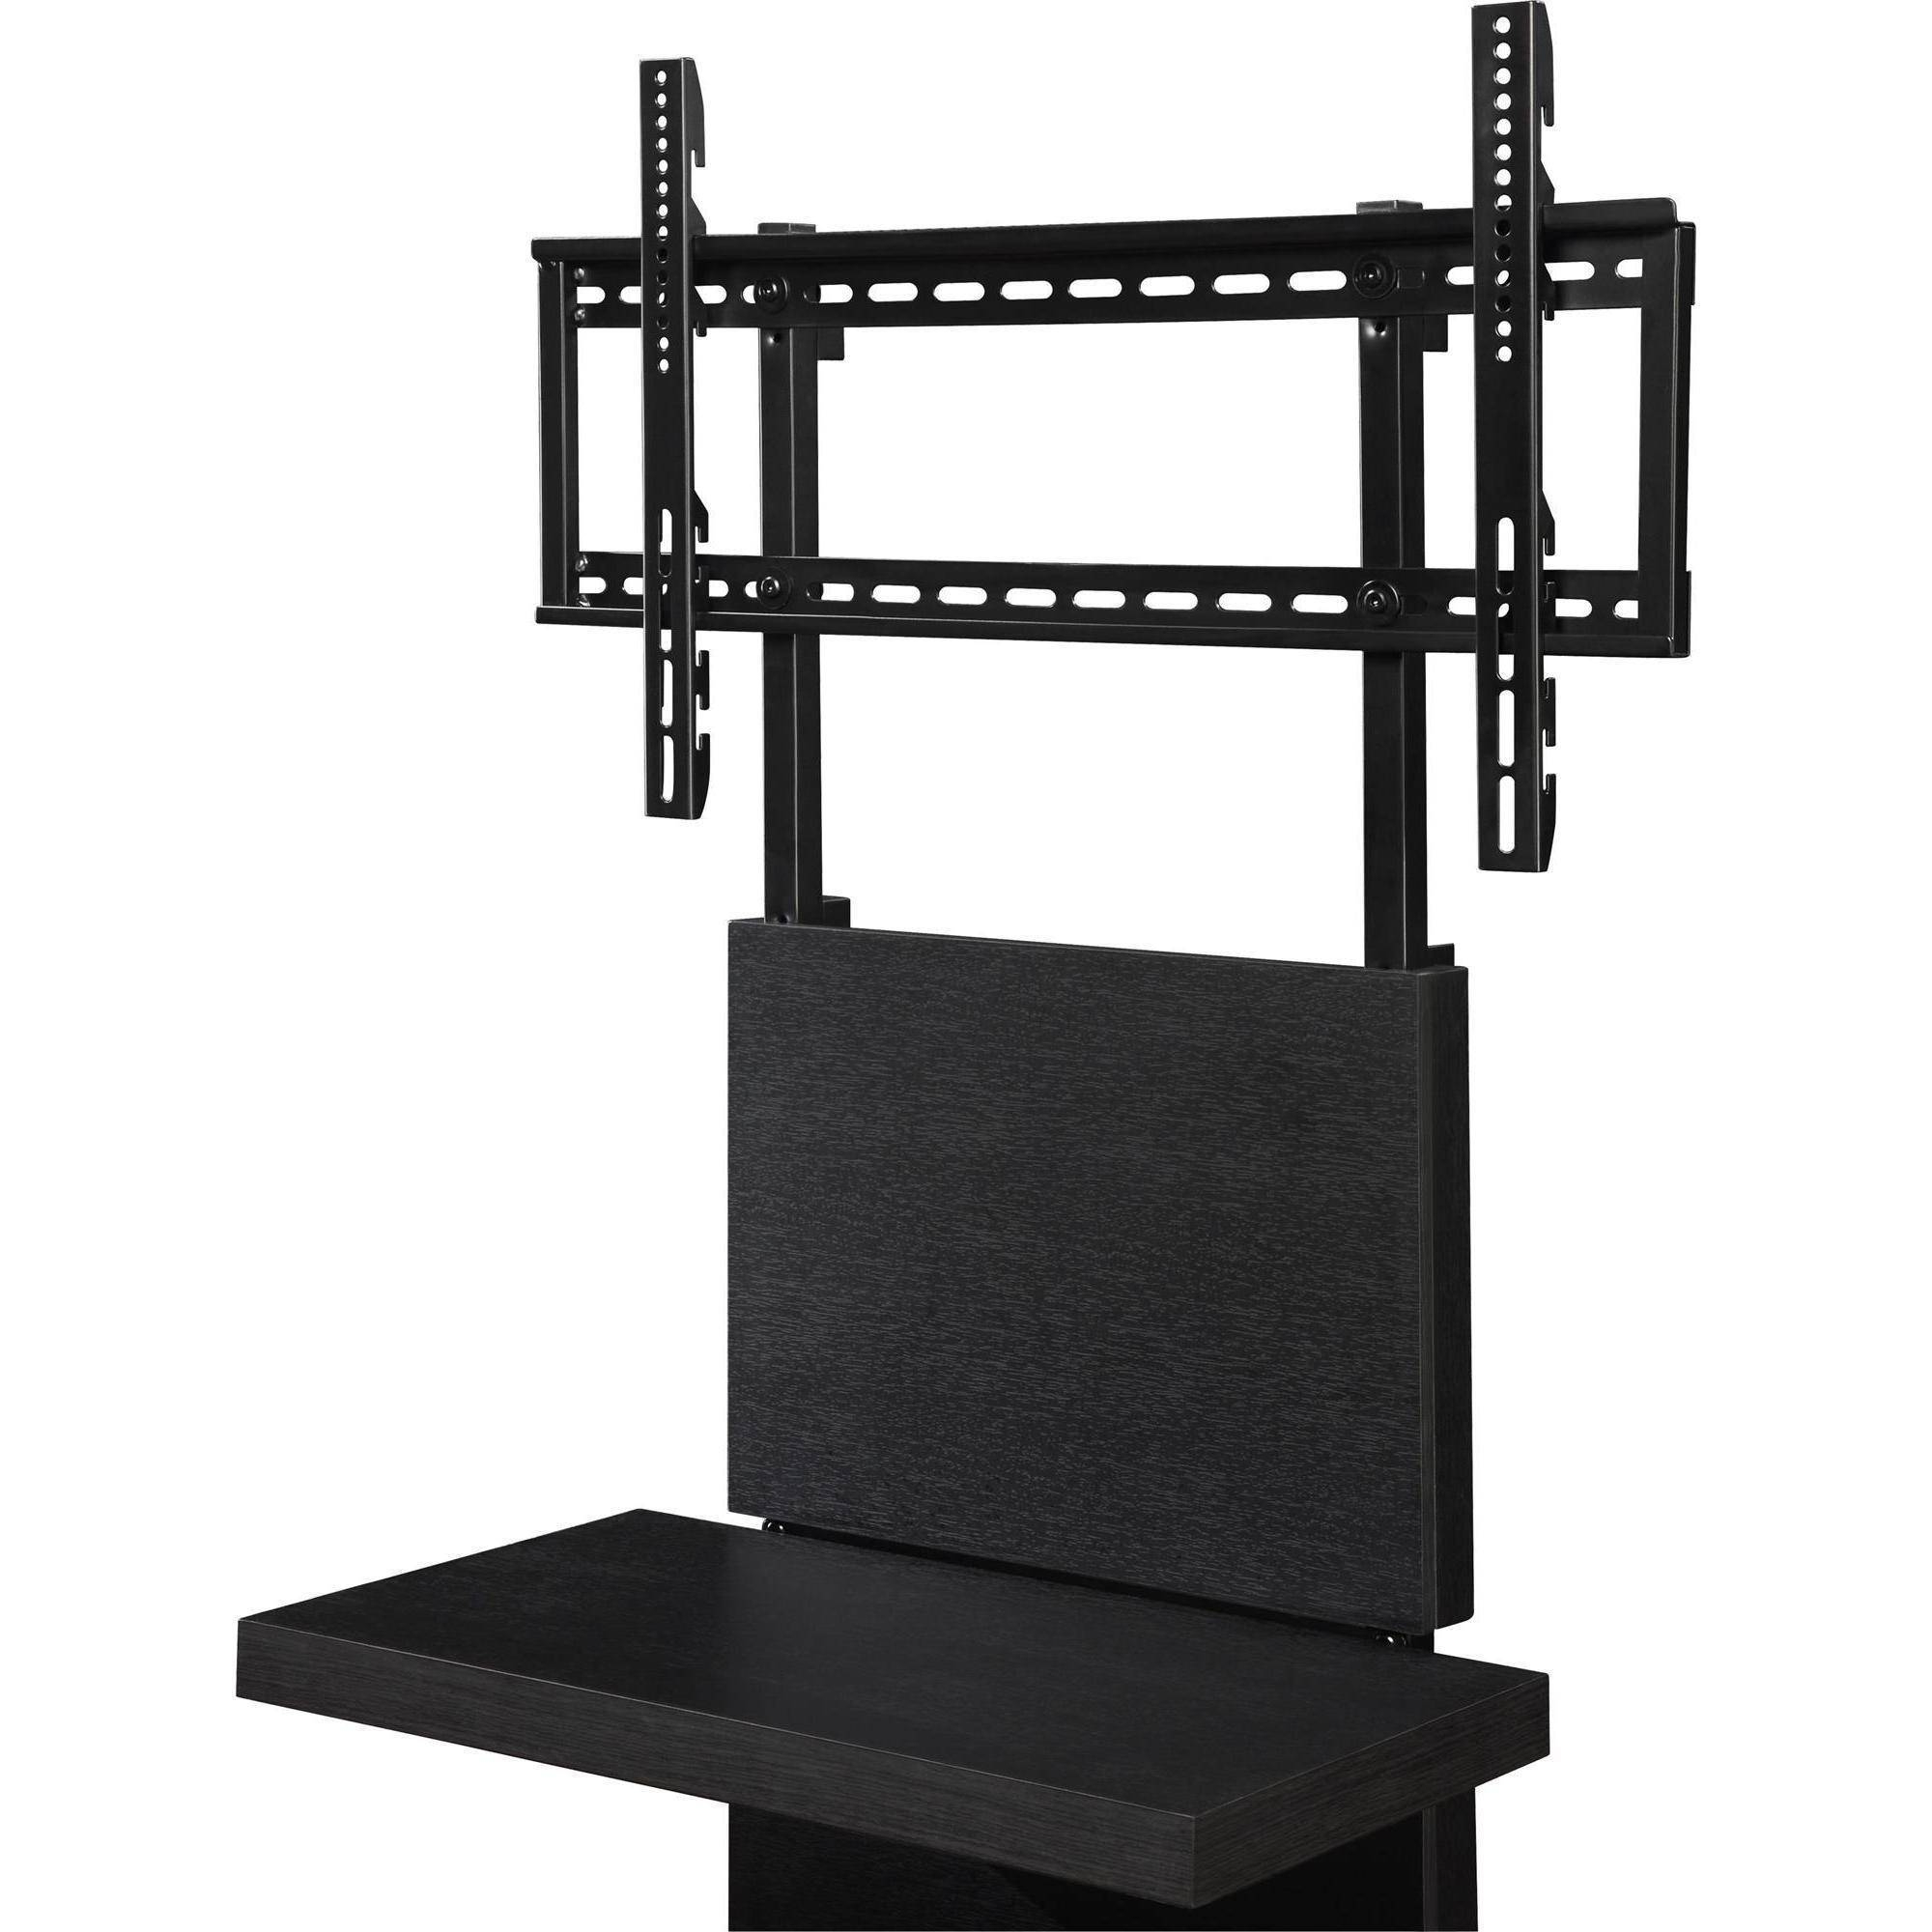 "Popular Wall Mount Tv Stand With 3 Shelves Black For Tvs Up To 60"" (Gallery 8 of 20)"